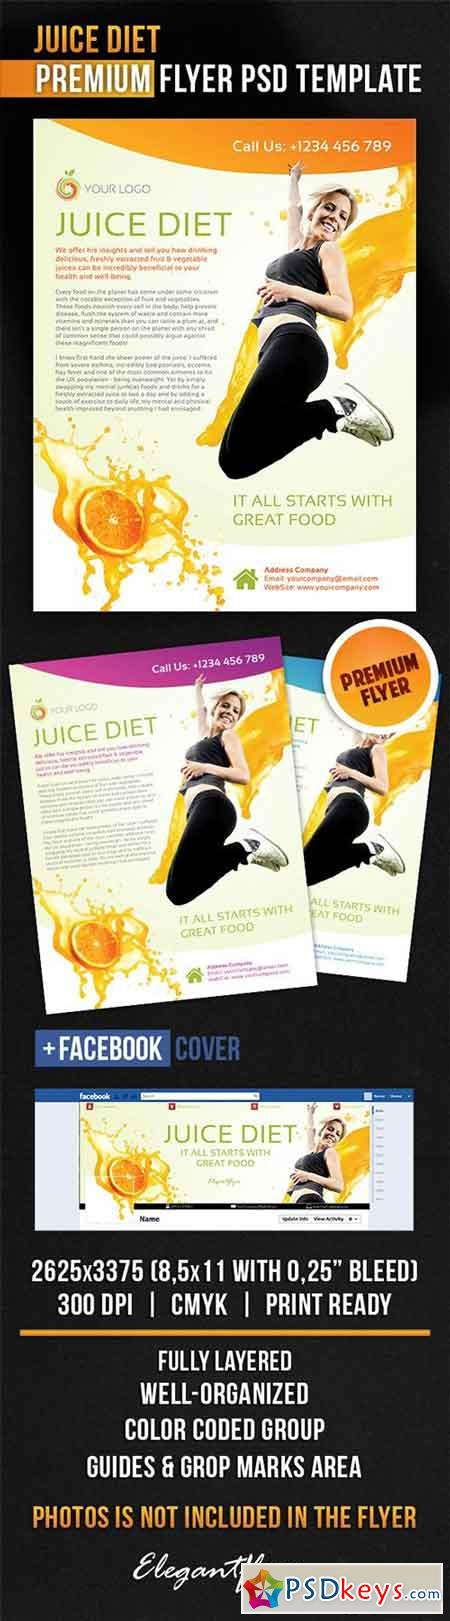 Juice Diet Flyer PSD Template + Facebook Cover